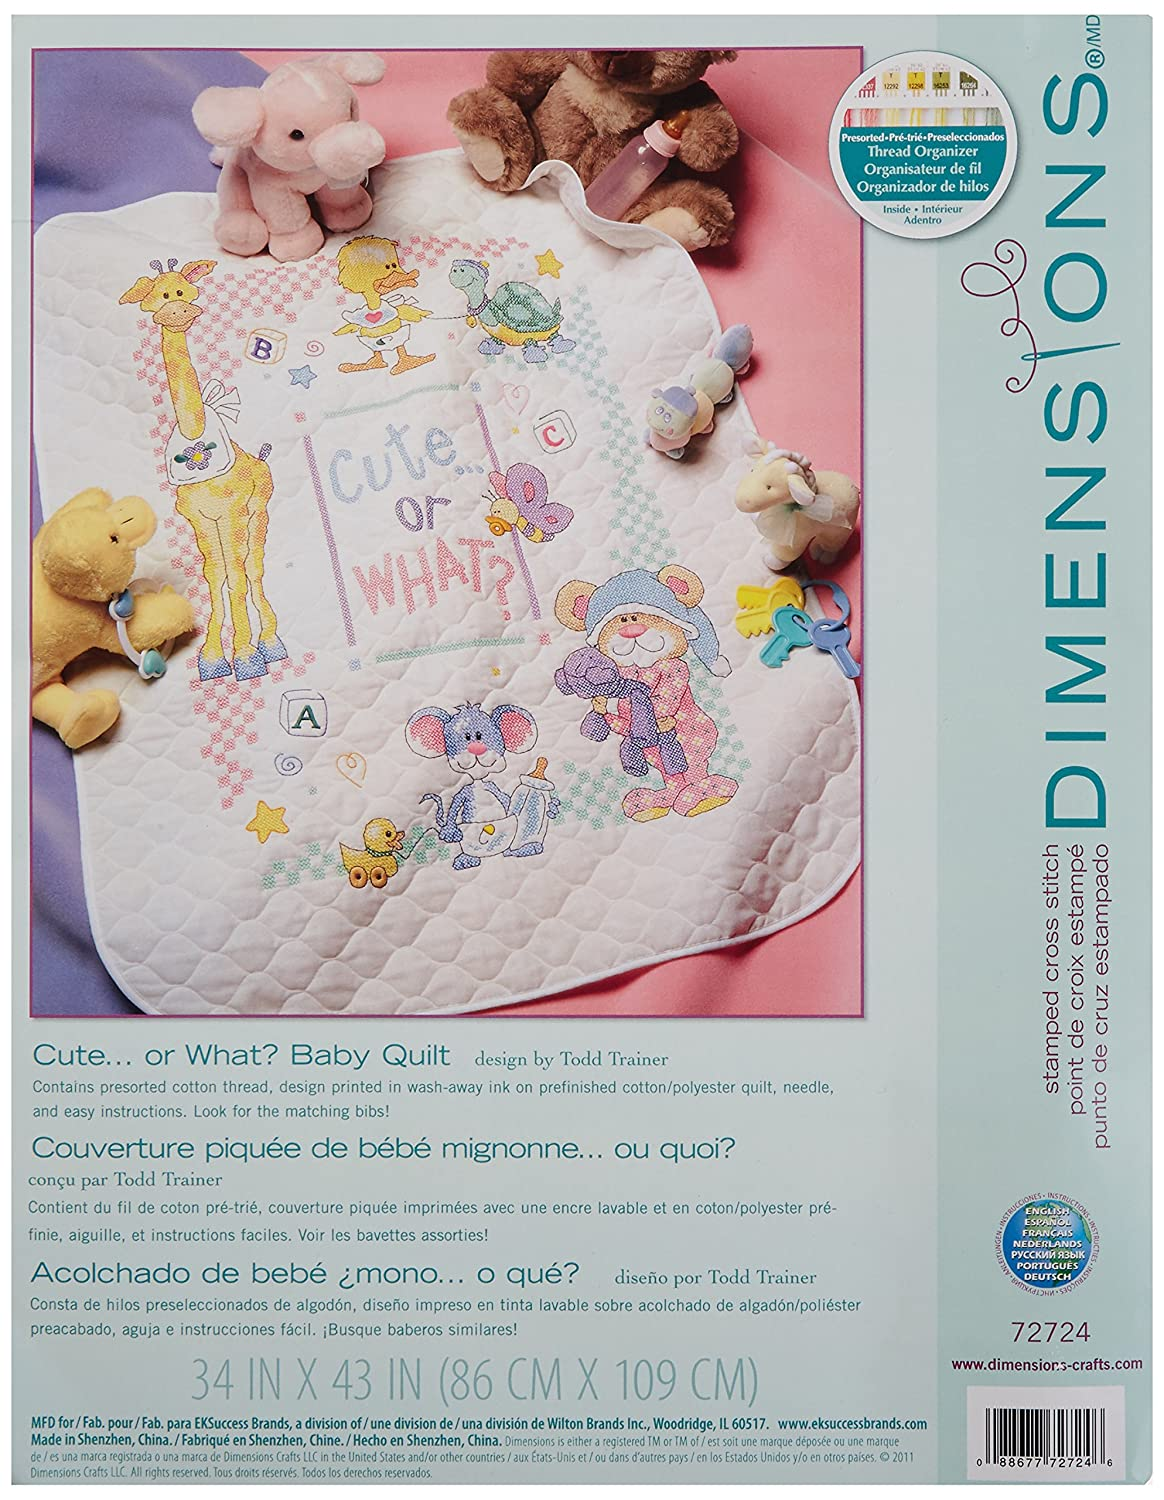 Dimensions Needlecrafts Stamped Cross Stitch, Cute or What 72724